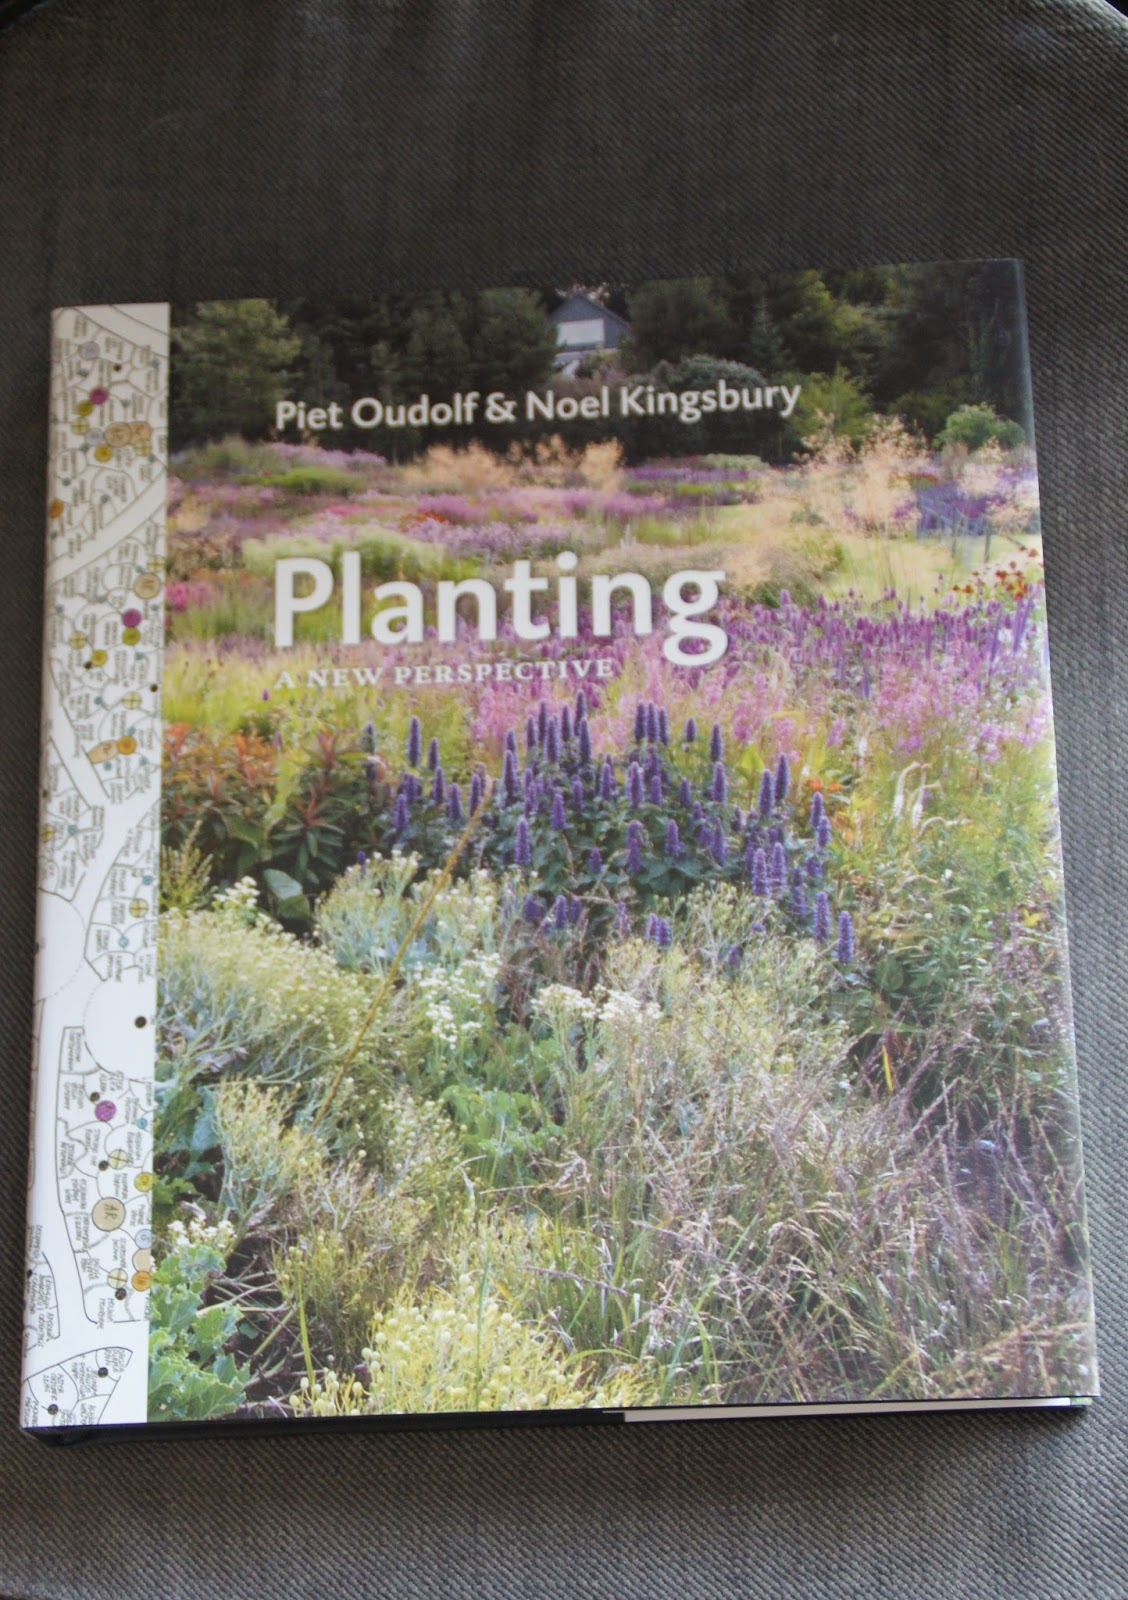 A new book to add to my  Labelled Dryopteris